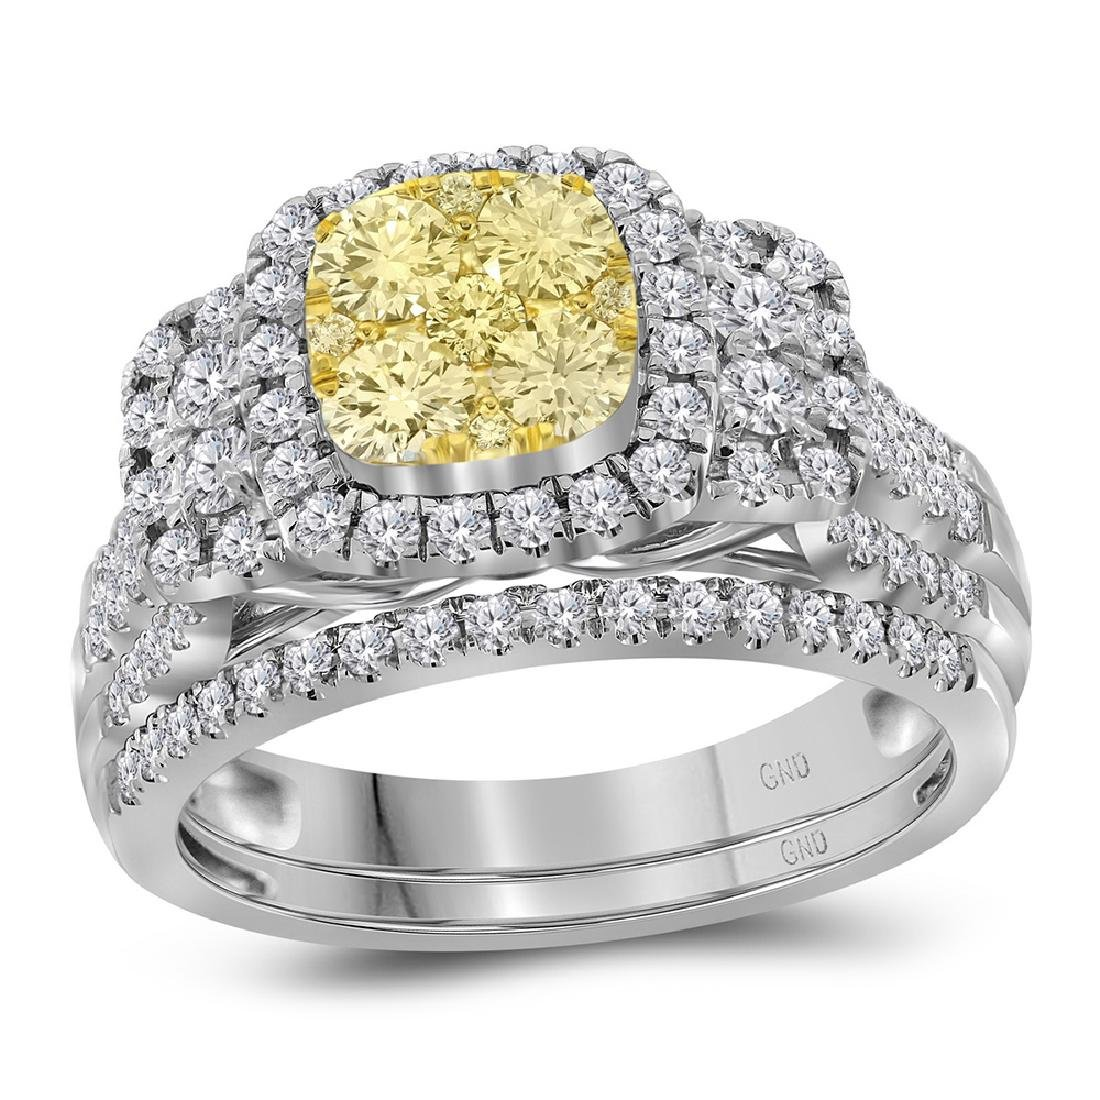 1 CTW Yellow Diamond Bridal Halo Engagement Ring 14KT